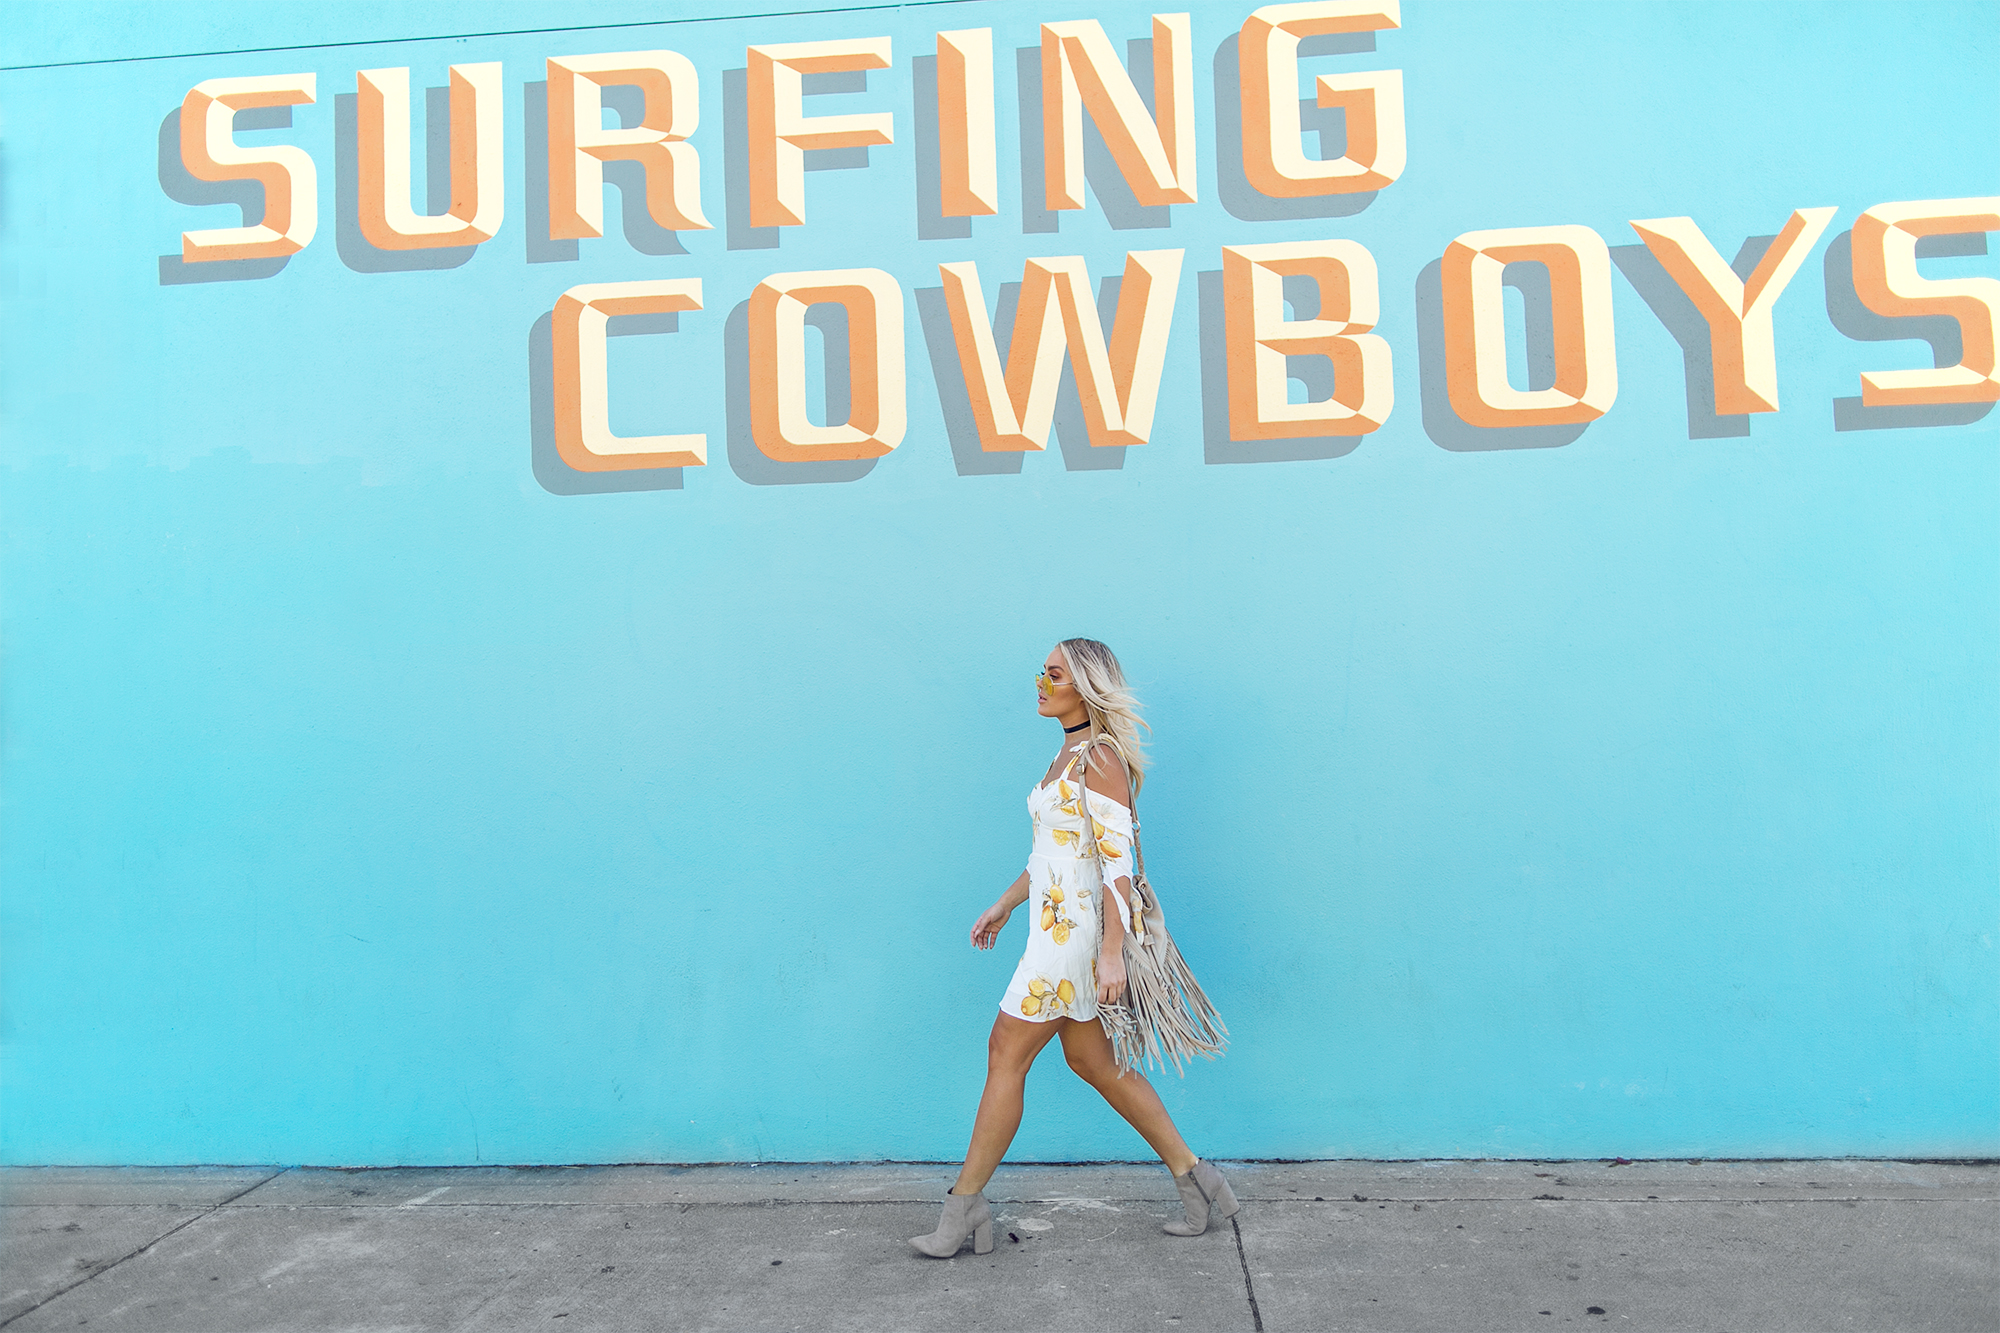 Surfing cowboys